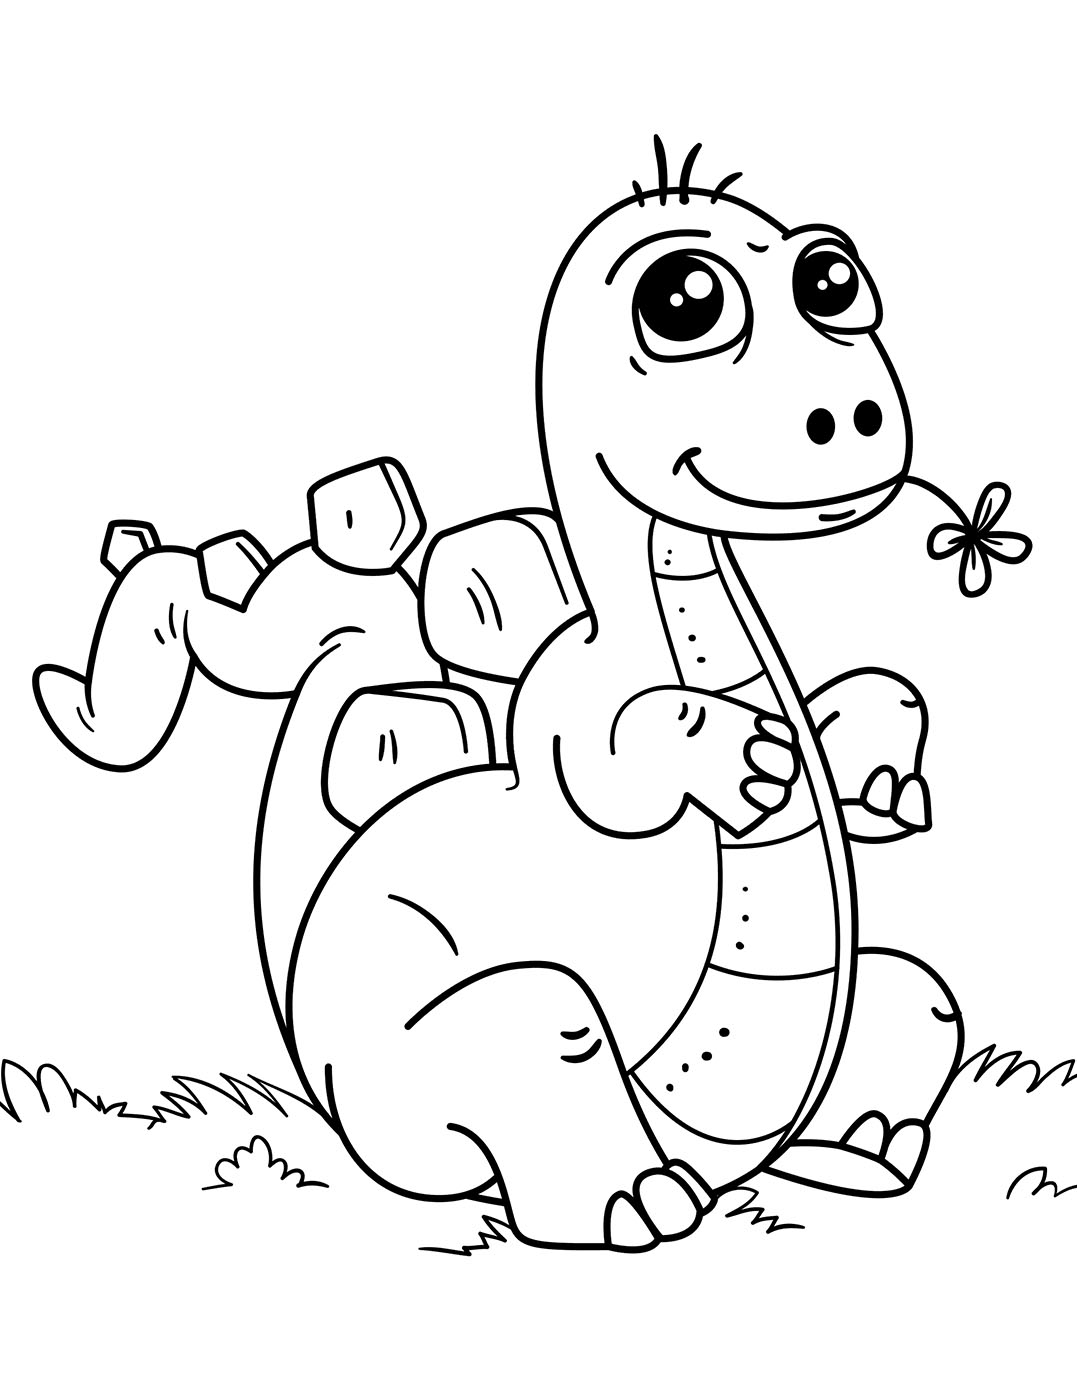 dinosaur coloring easy simple dinosaur coloring pages for kids dinosaur coloring easy